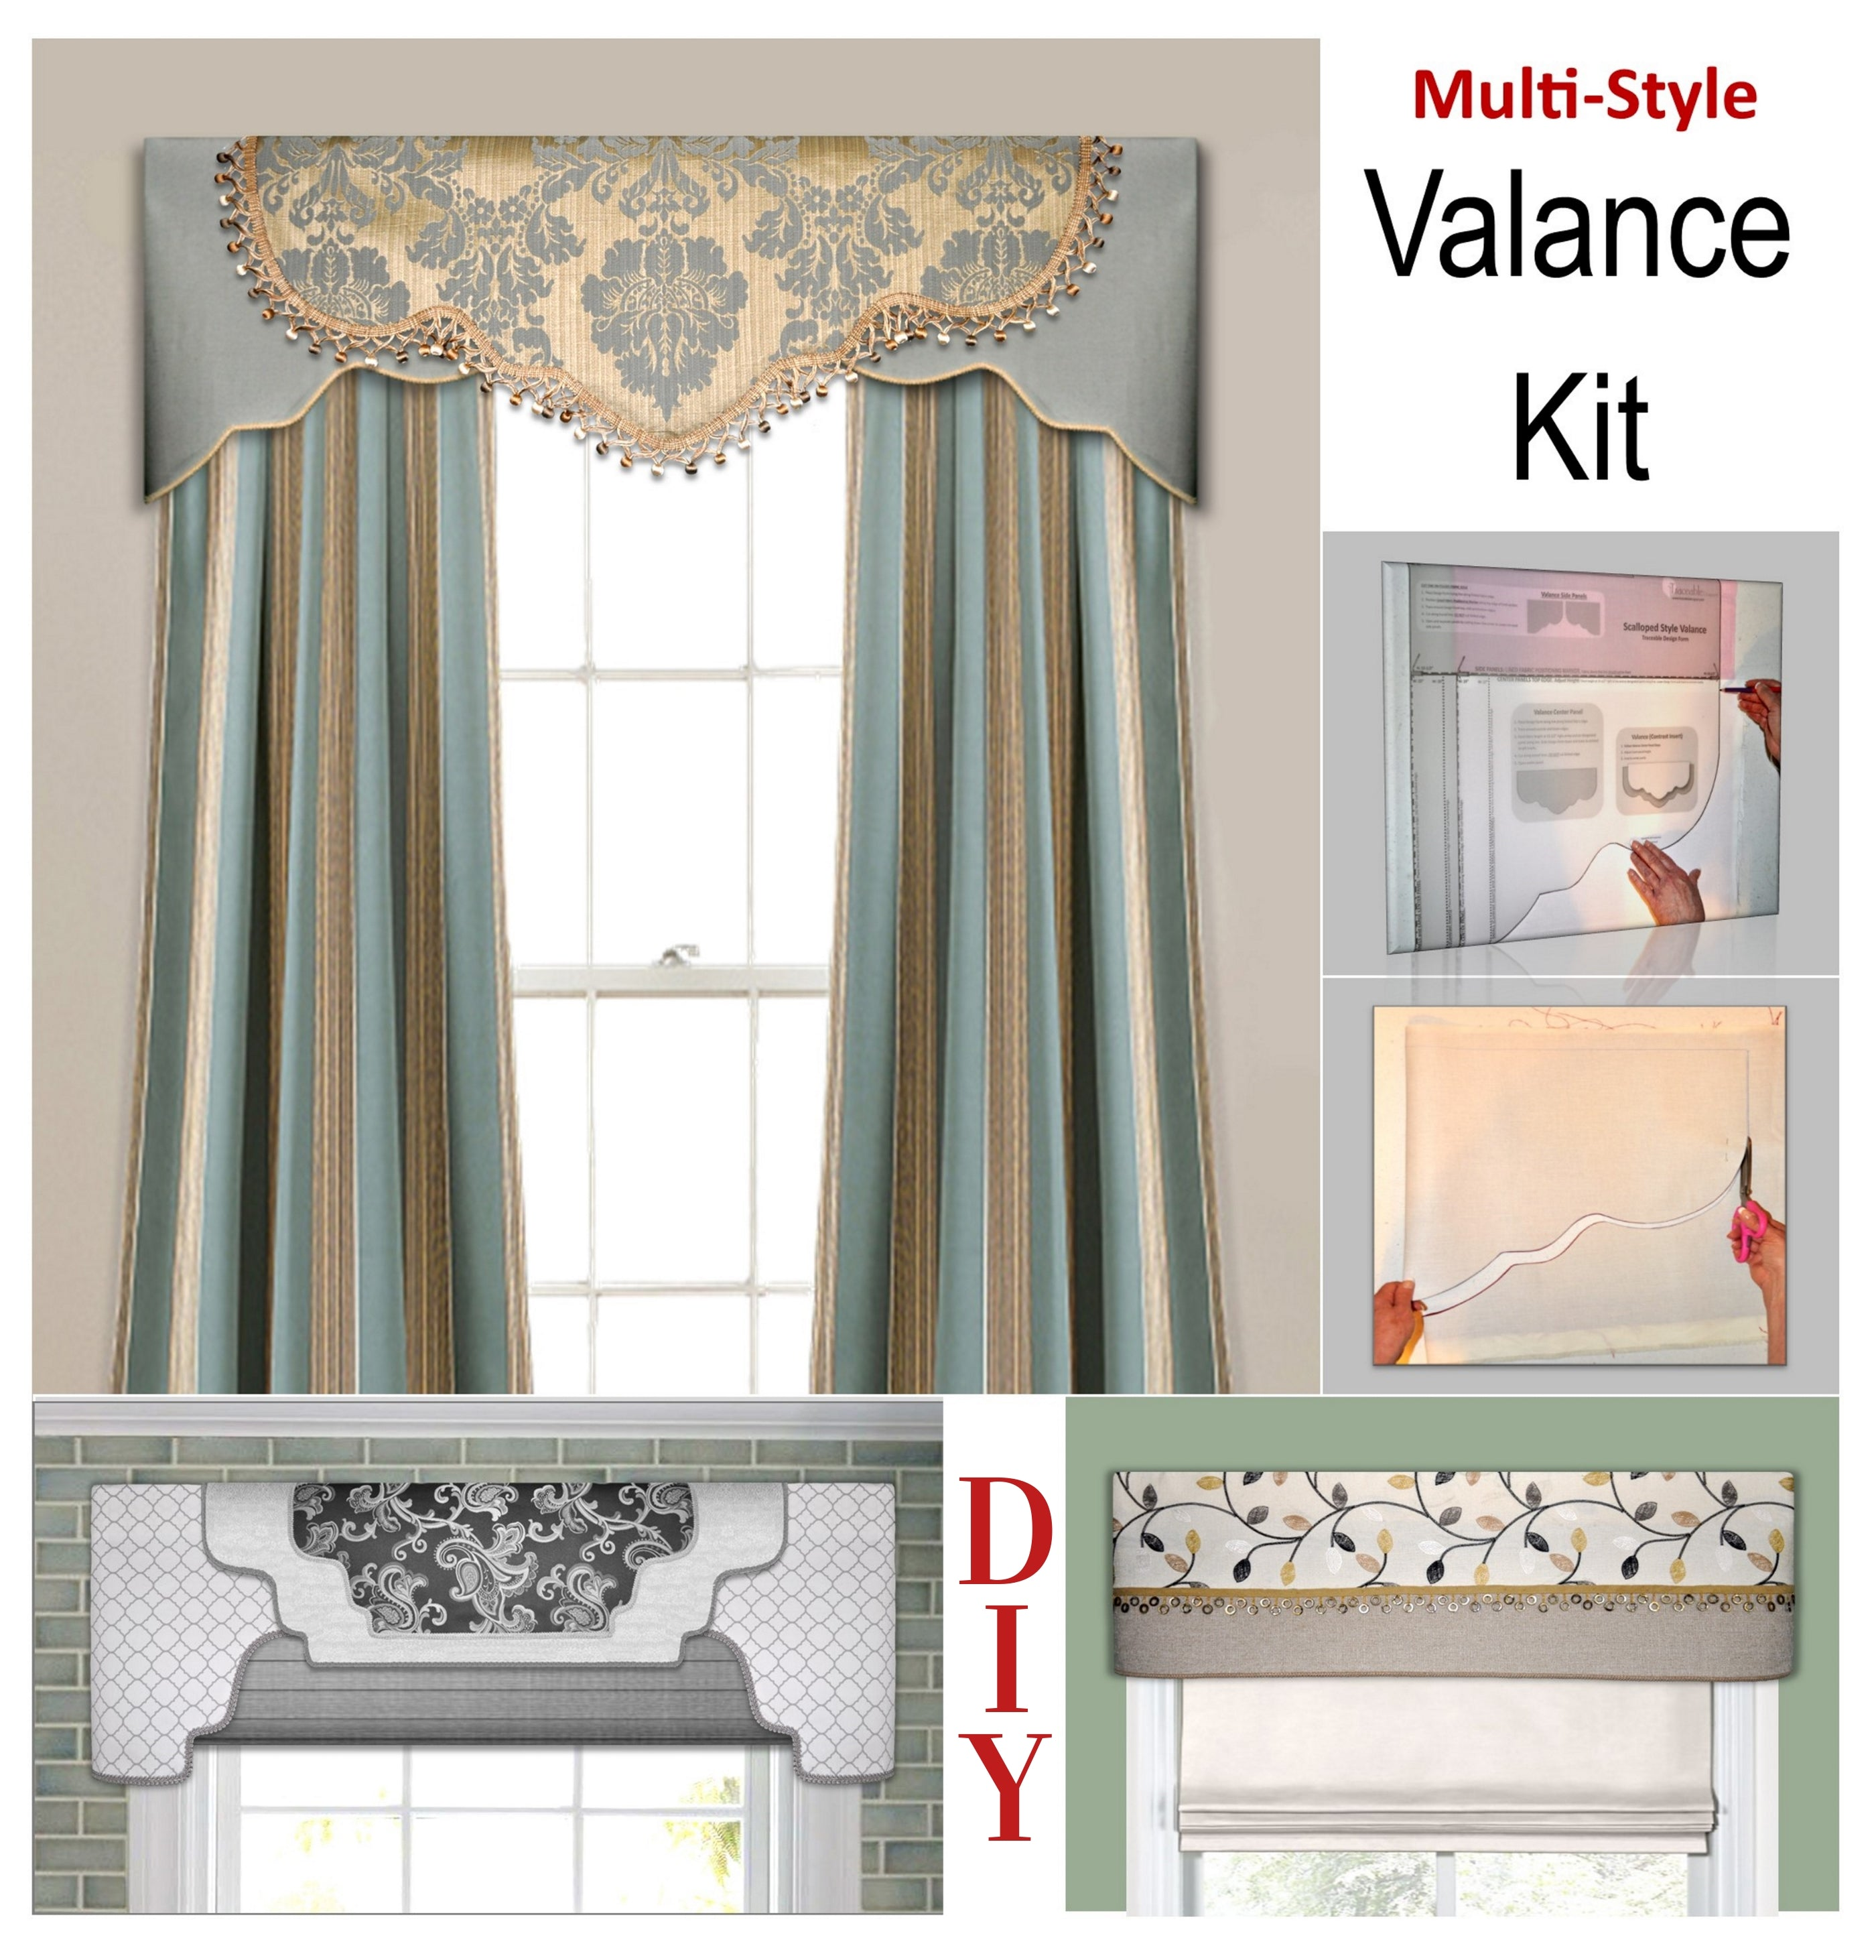 Traceable Desiger DIY multi-style valance kit, no sewing required, includes scalloped, arched and straight window treatment styles, Trace, Cut Out, Iron on Trim and Hang!